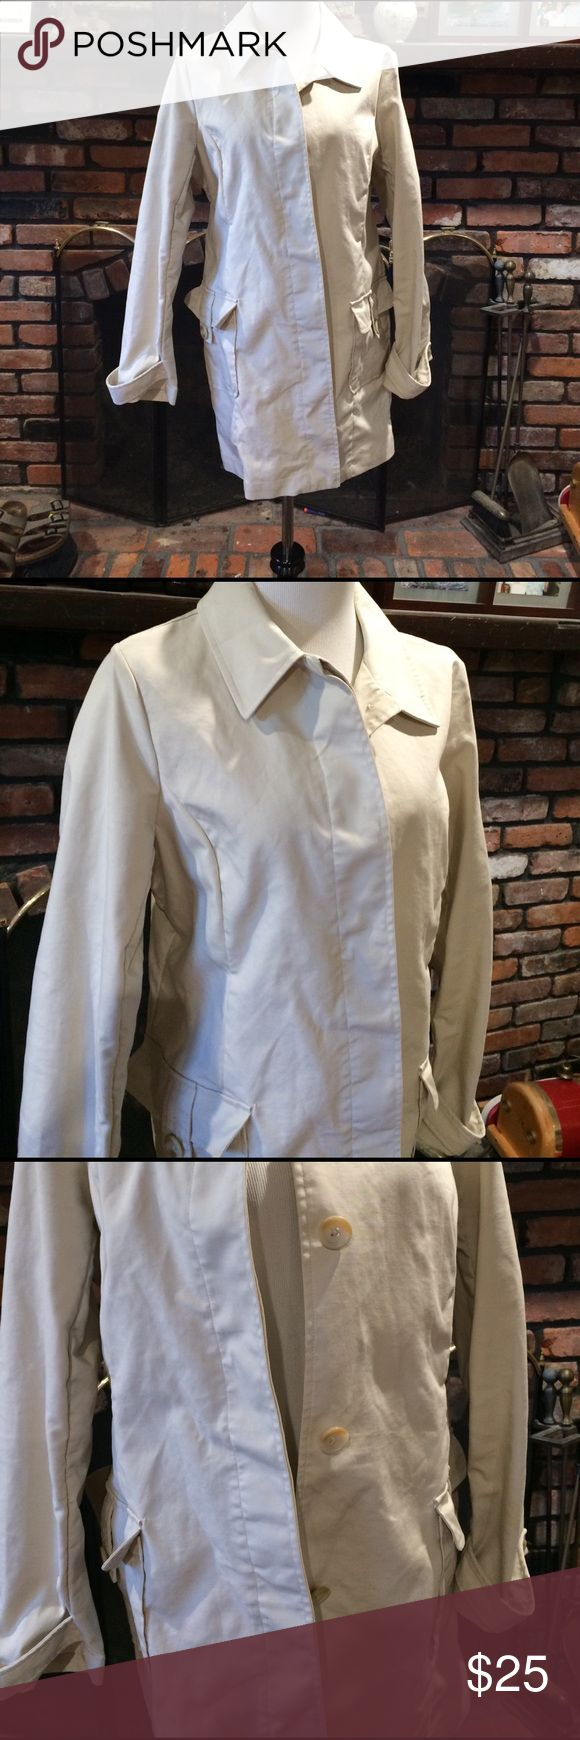 Old Navy khaki trench coat size large Old Navy khaki trench coat size large.  Nice 3/4 length trench coat.  Nice lightweight for spring. Old Navy Jackets & Coats Trench Coats